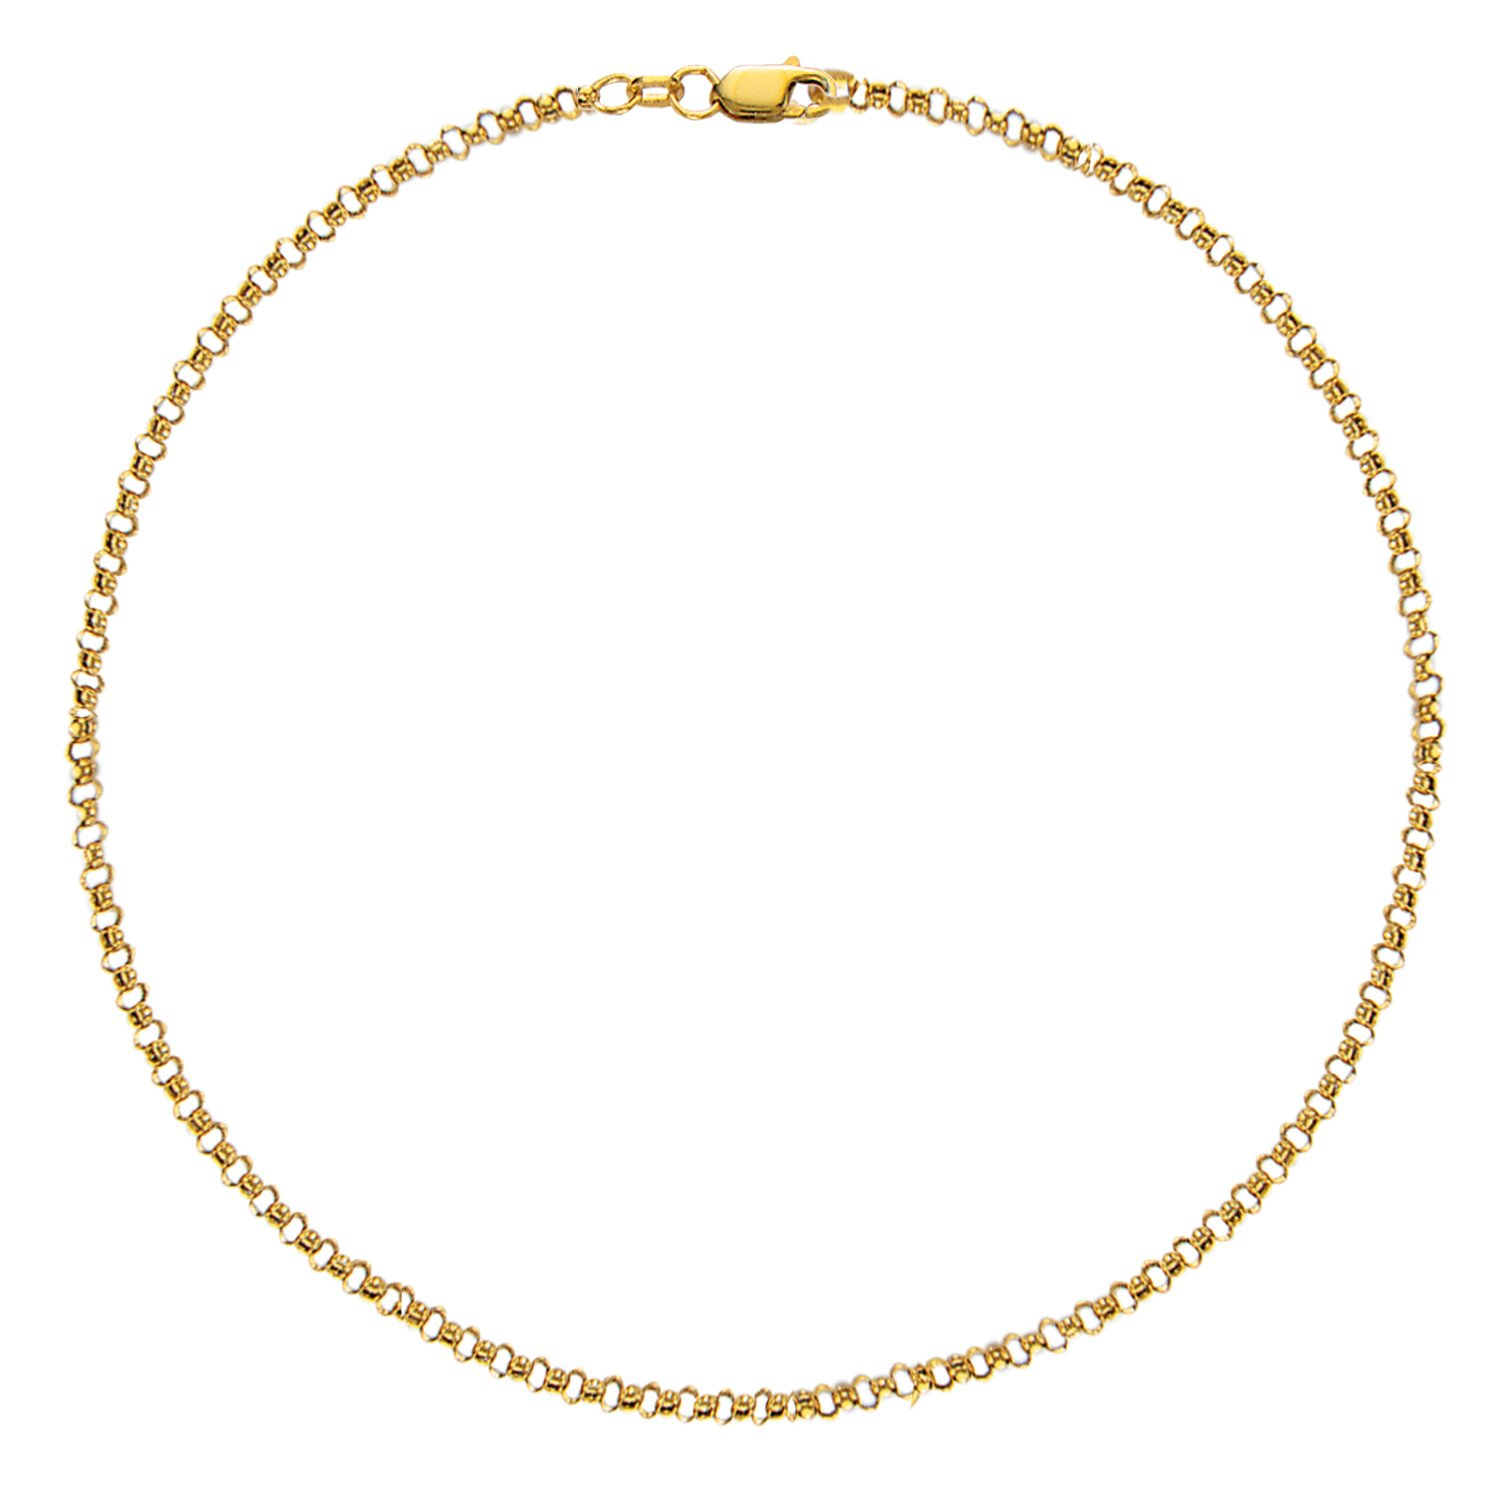 "10K Solid Yellow Gold Anklet Rolo Link Chain Ankle Bracelet 10"" Inch 2.3mm"